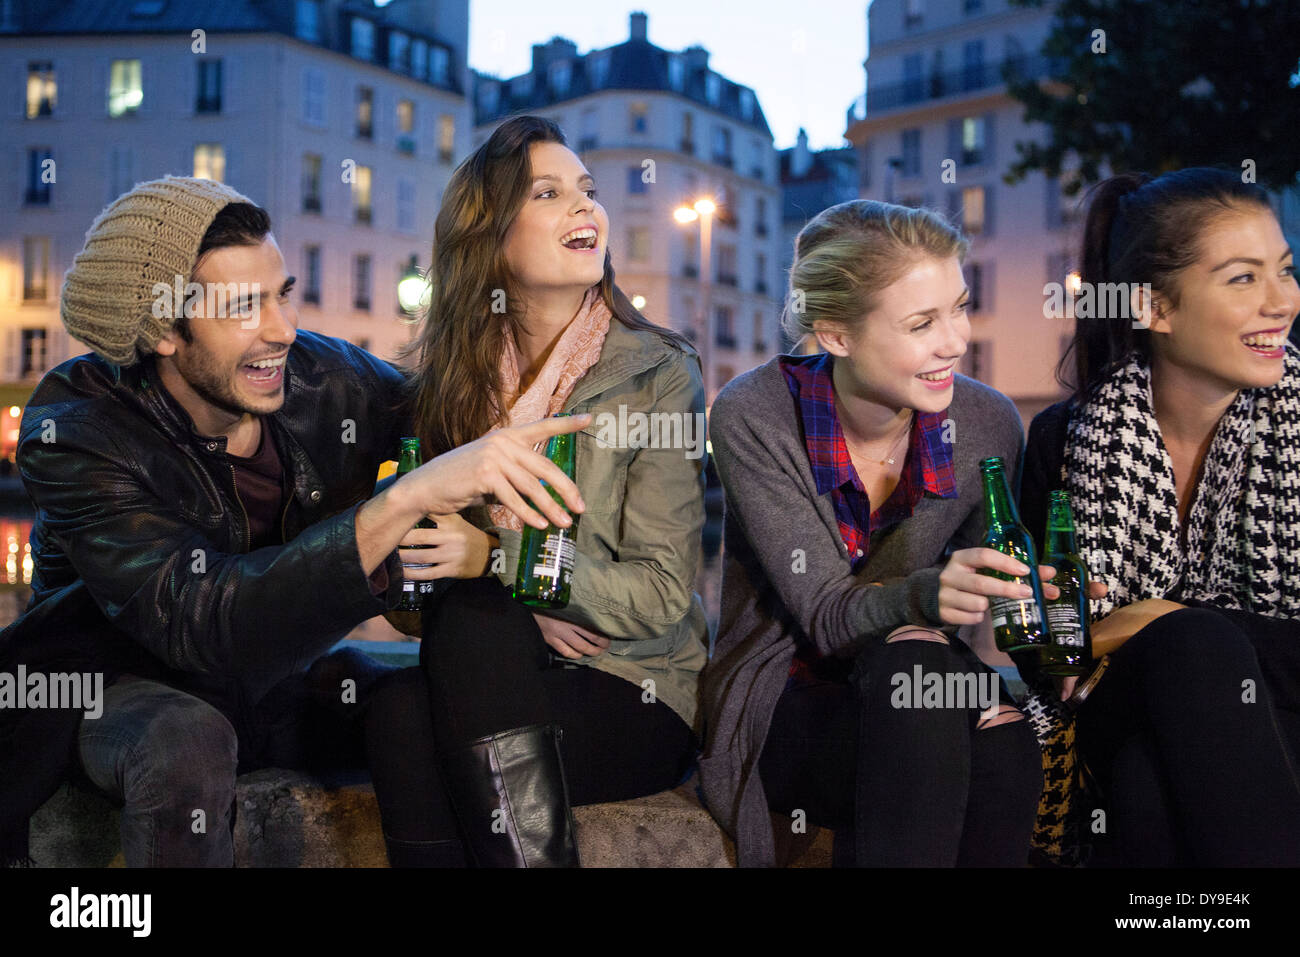 Friends having beers together outdoors - Stock Image